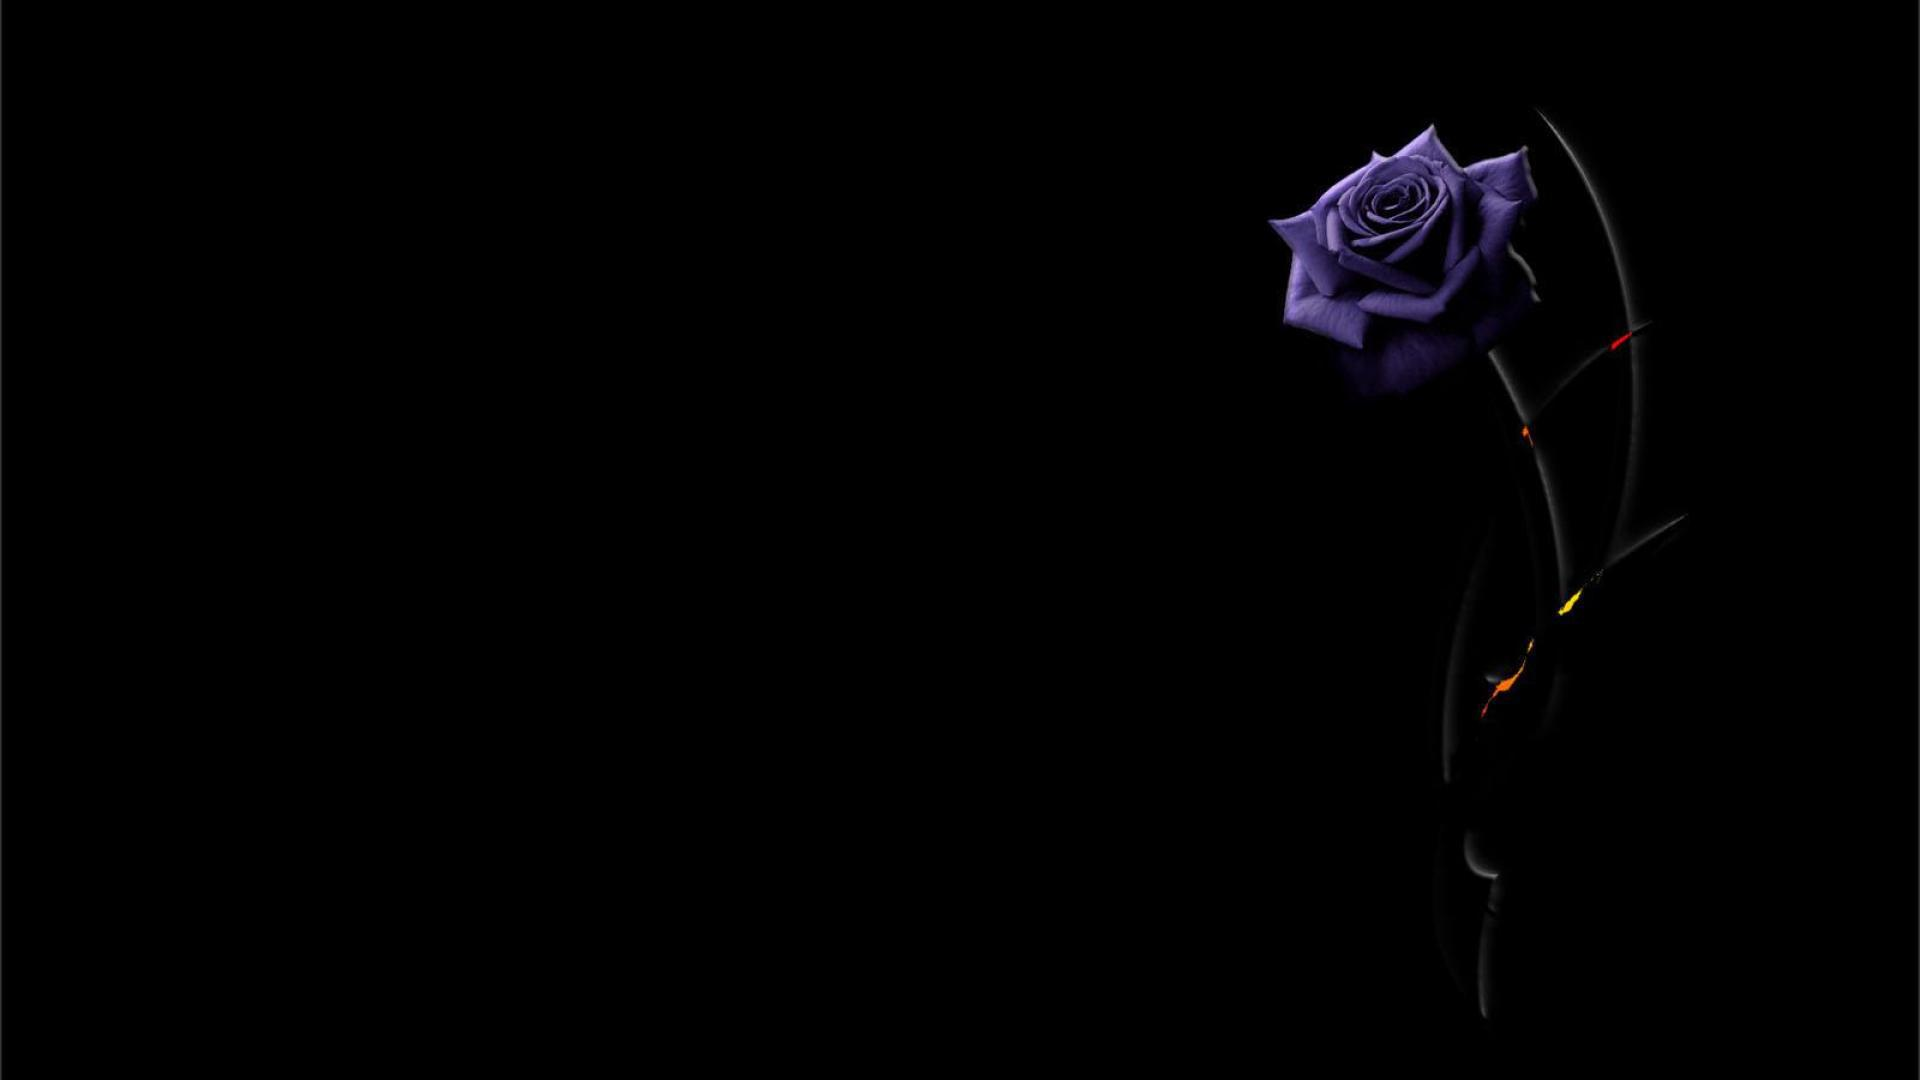 Beautiful purple rose on a black background wallpapers and images 1920x1080